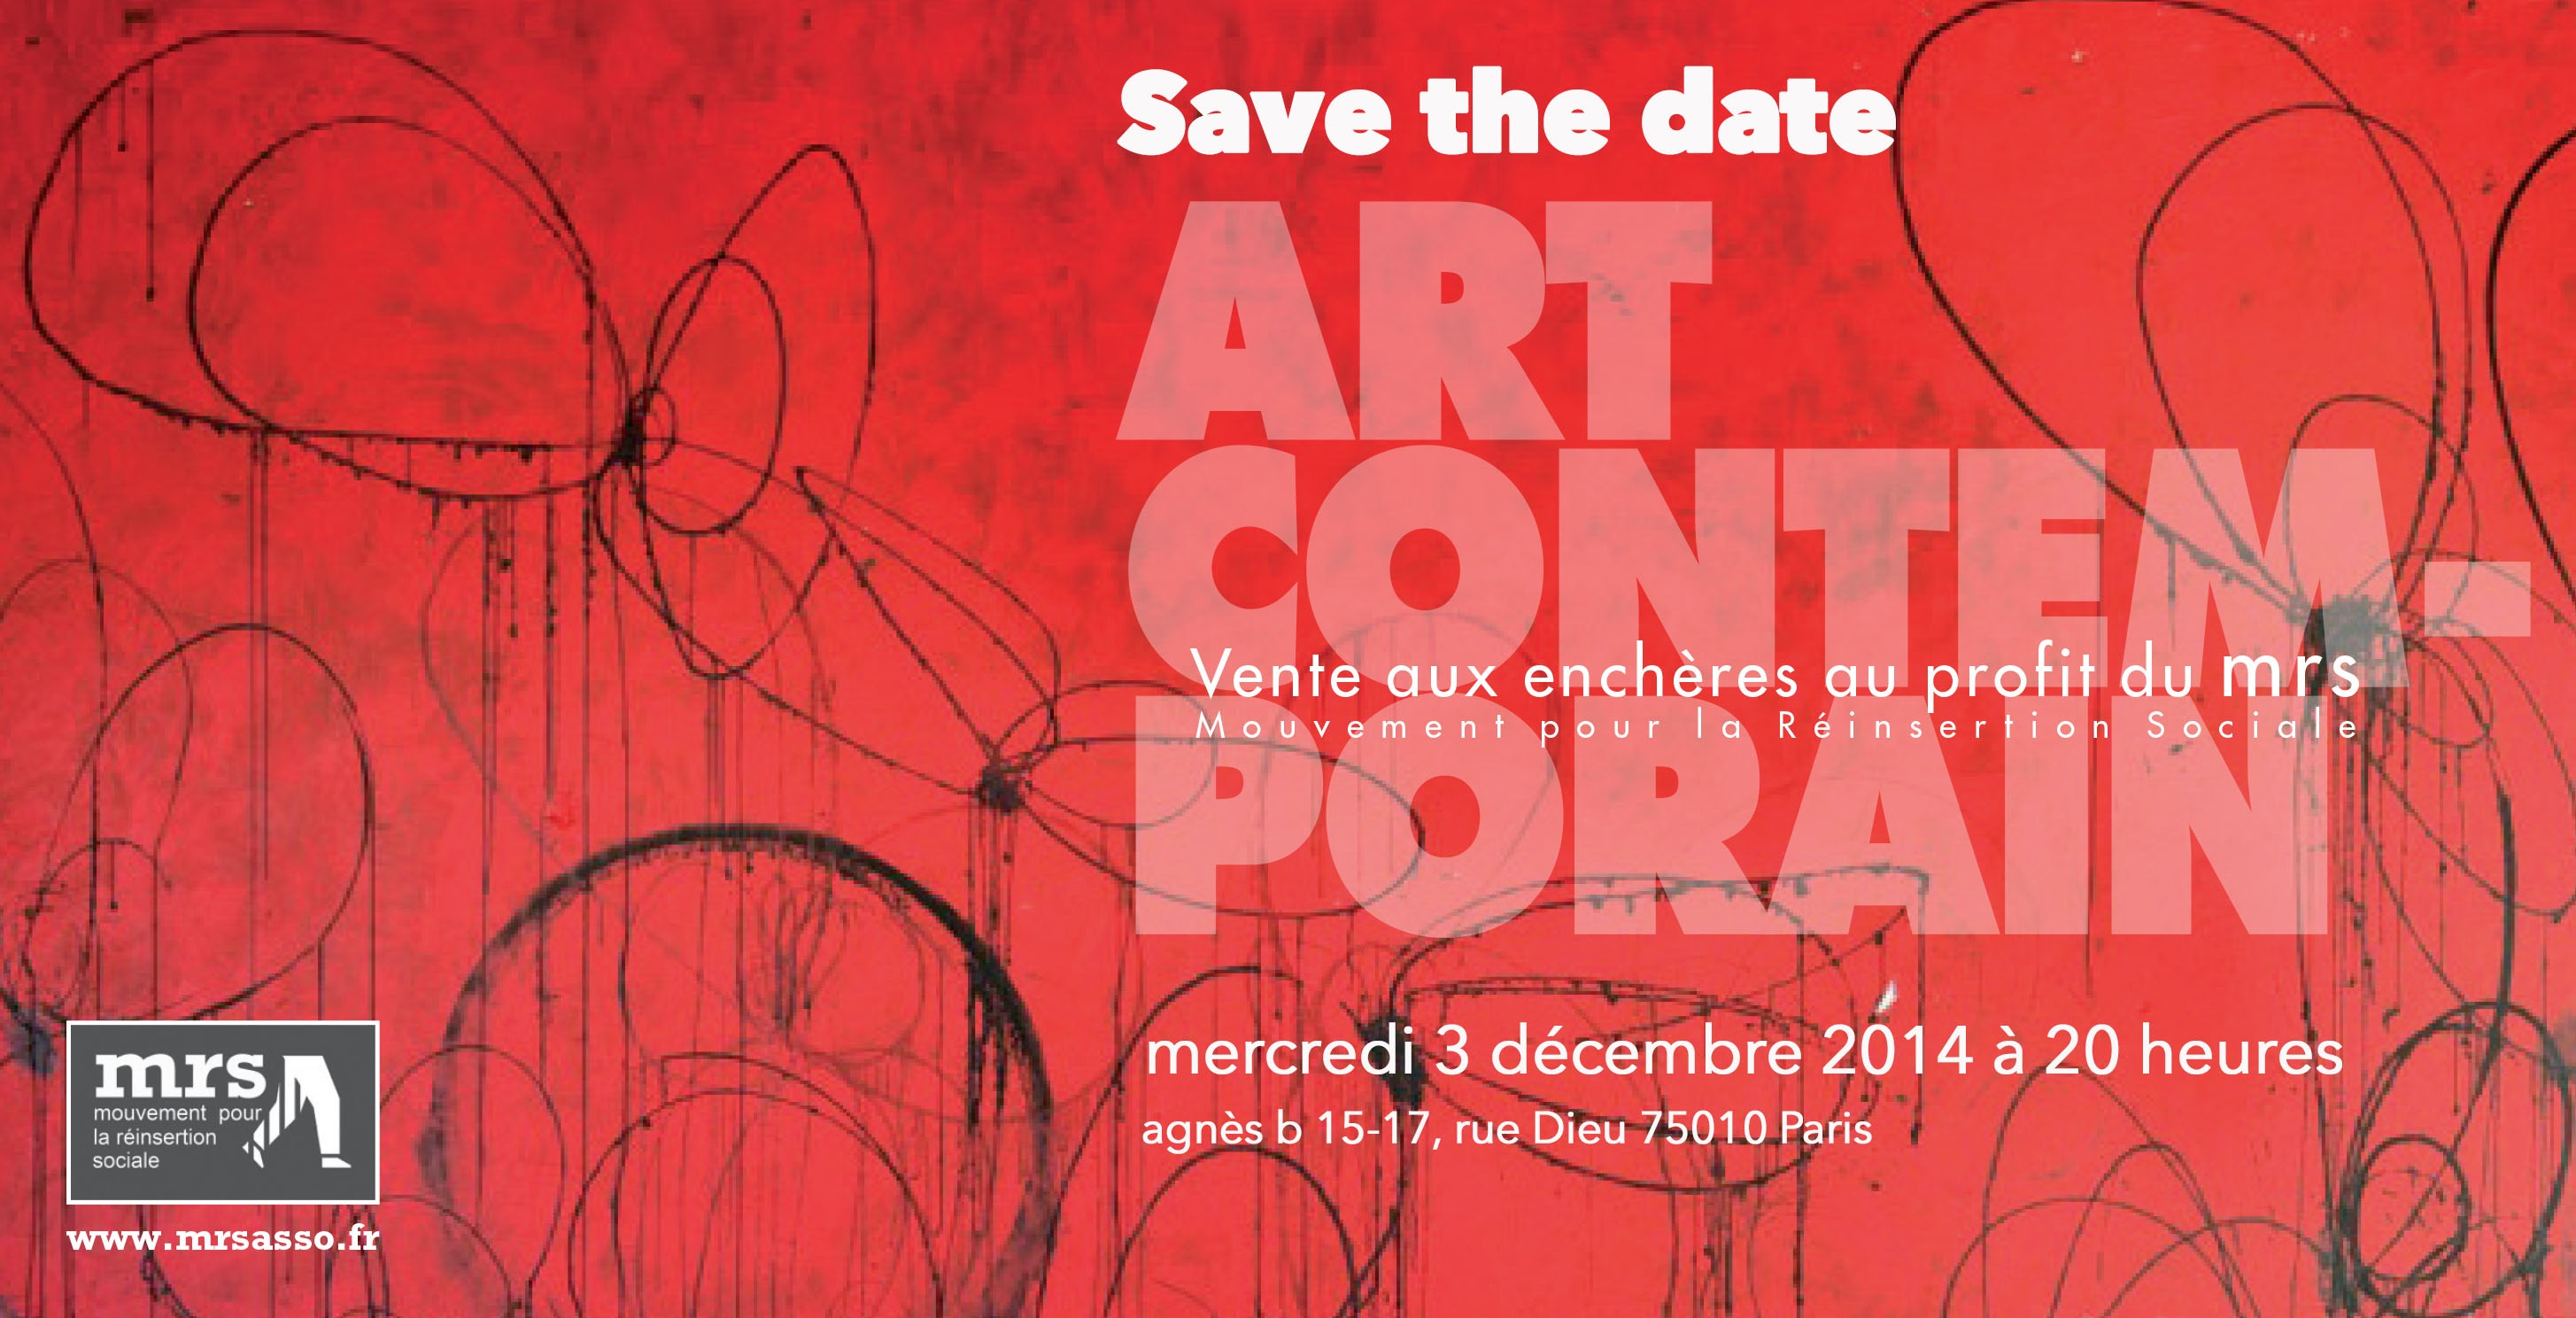 MRS-reinsertion_ventes-encheres_Save-the-date